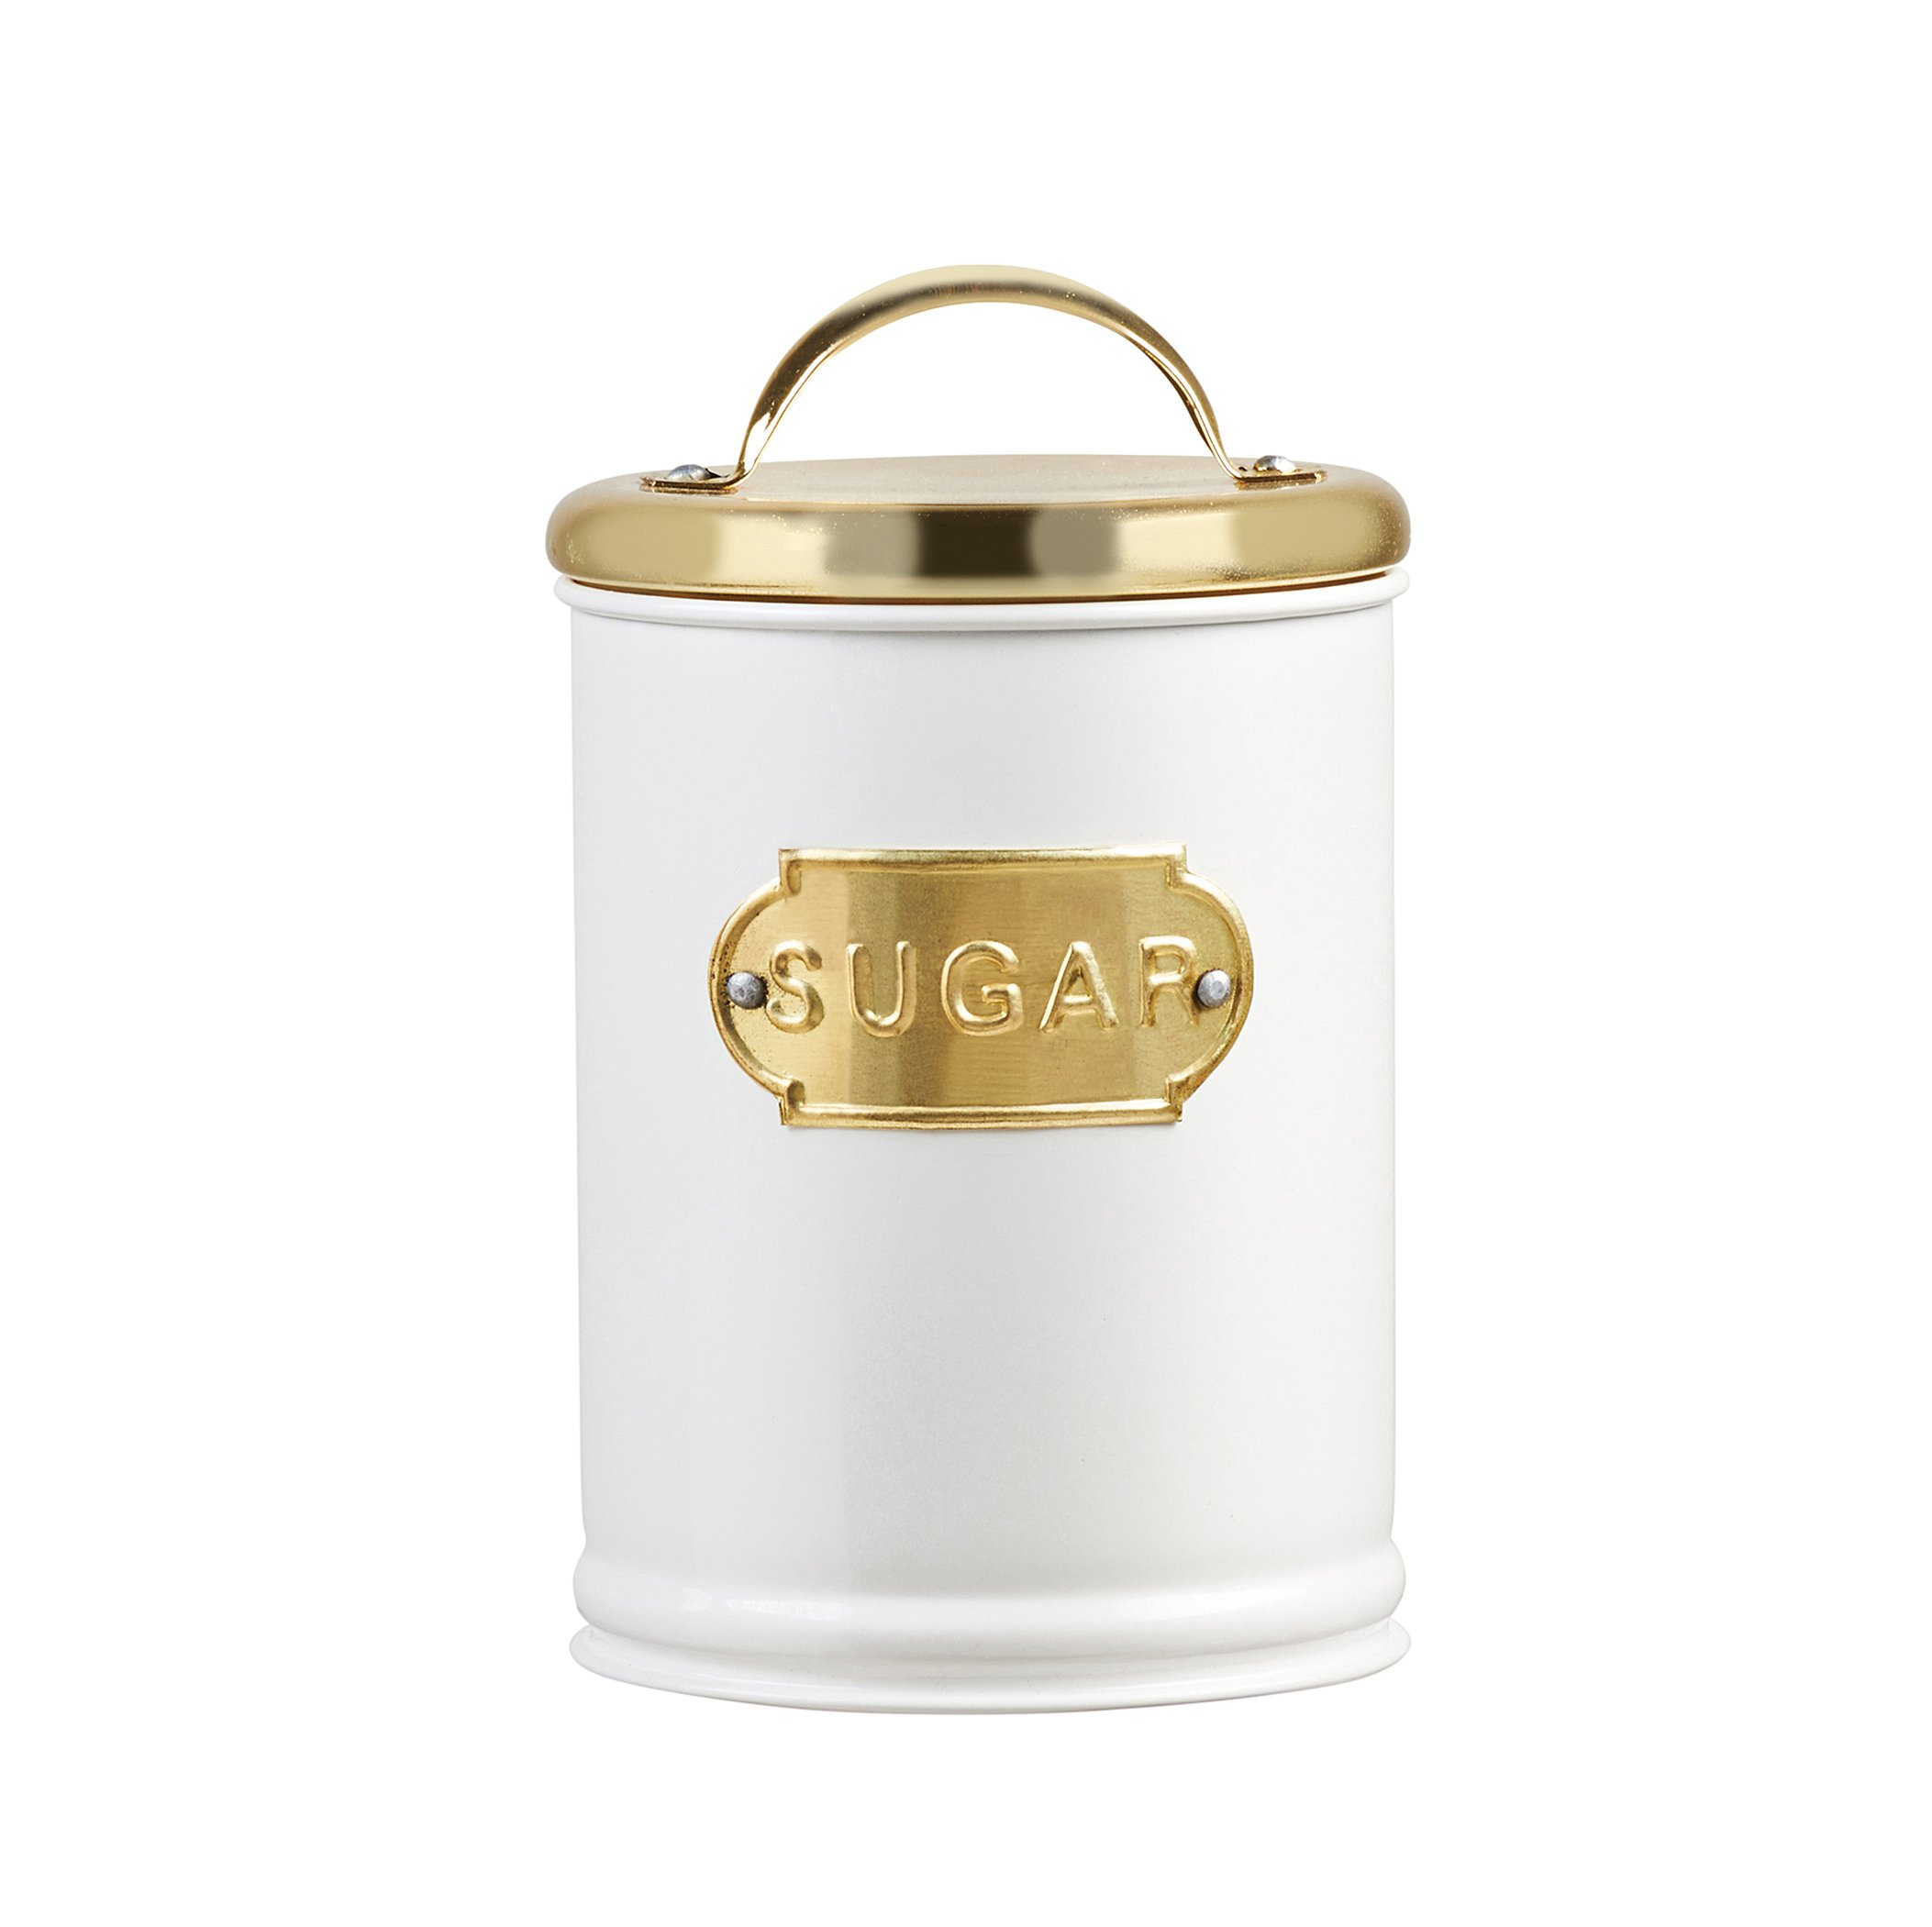 Amici Home, A5IP003R, Madison Collection Sugar Metal Storage Canister, Relief Label, Push Top Lid, Food Safe, Medium, 32 Ounces